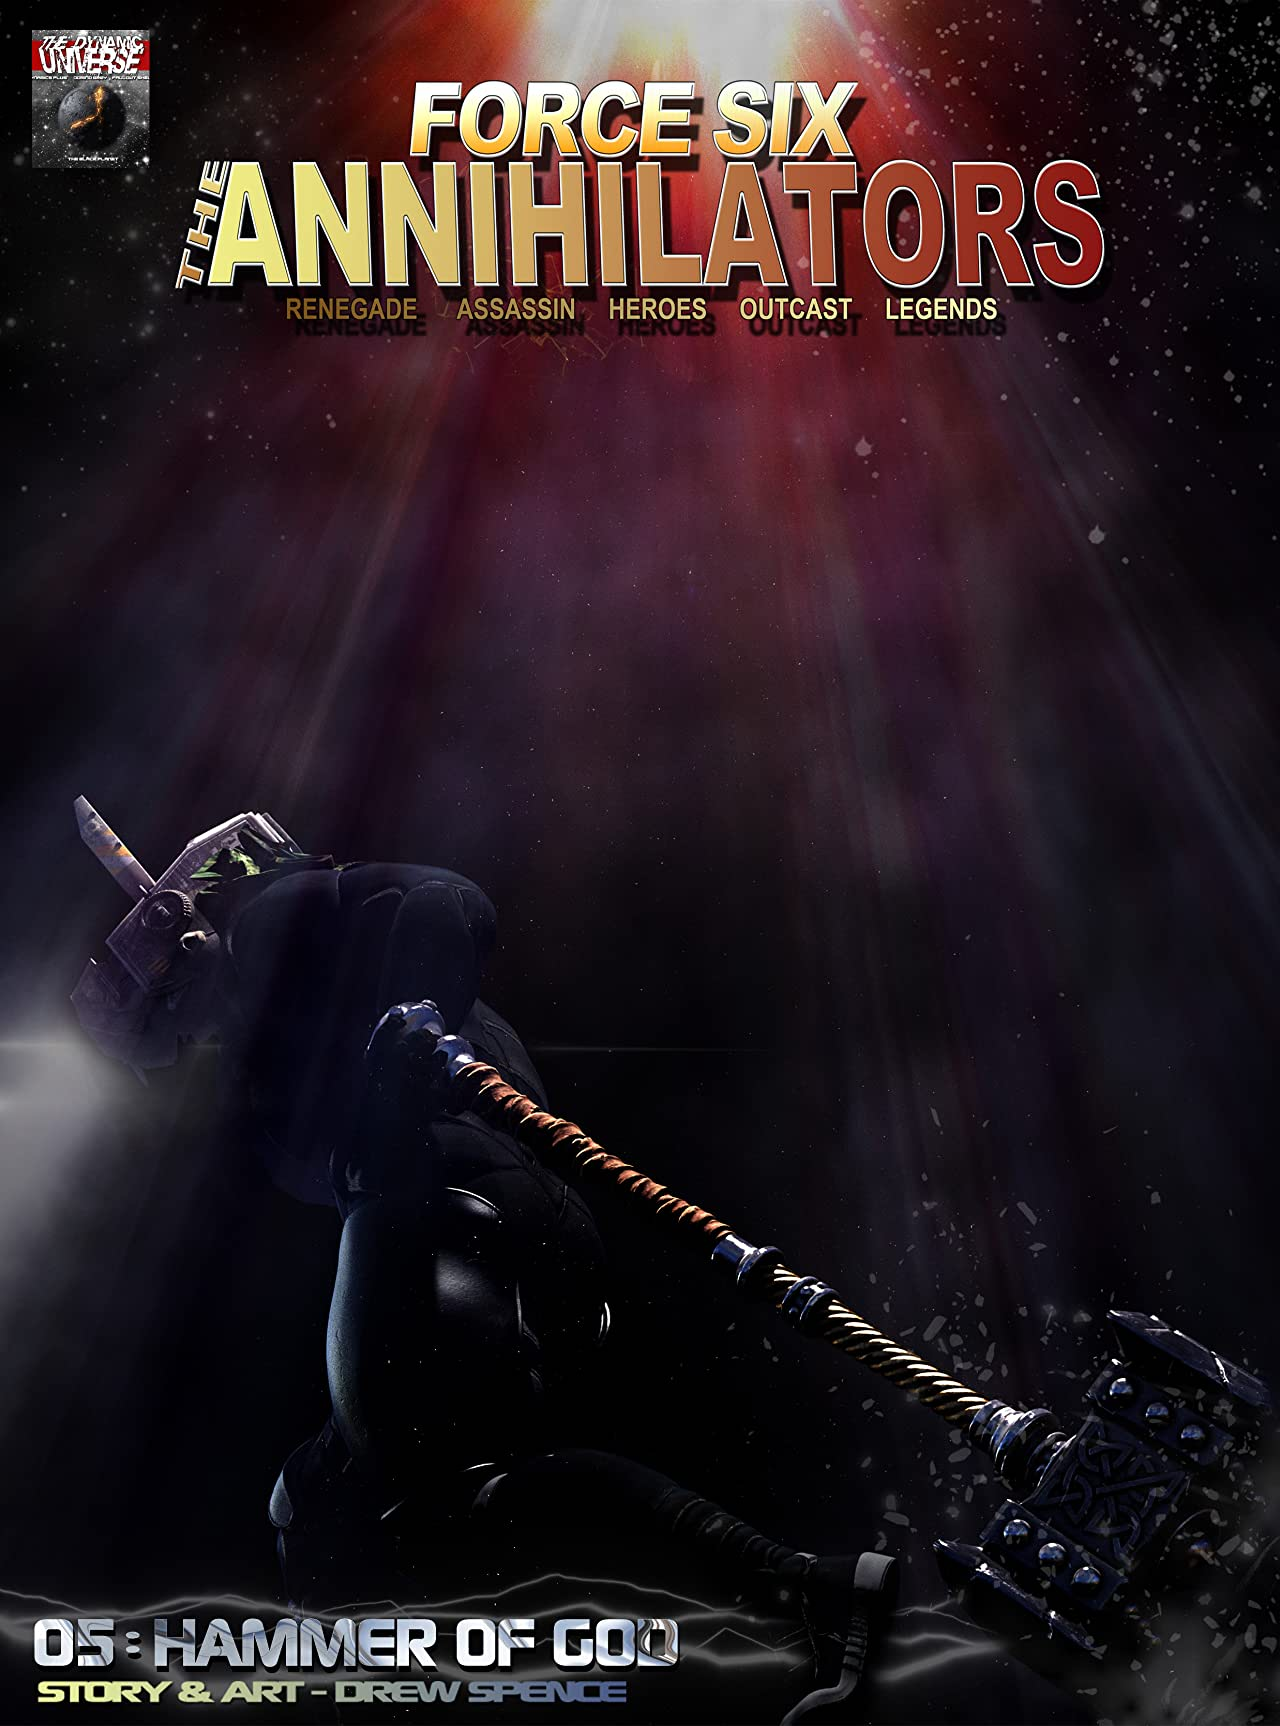 Force Six, The Annihilators Season I #5